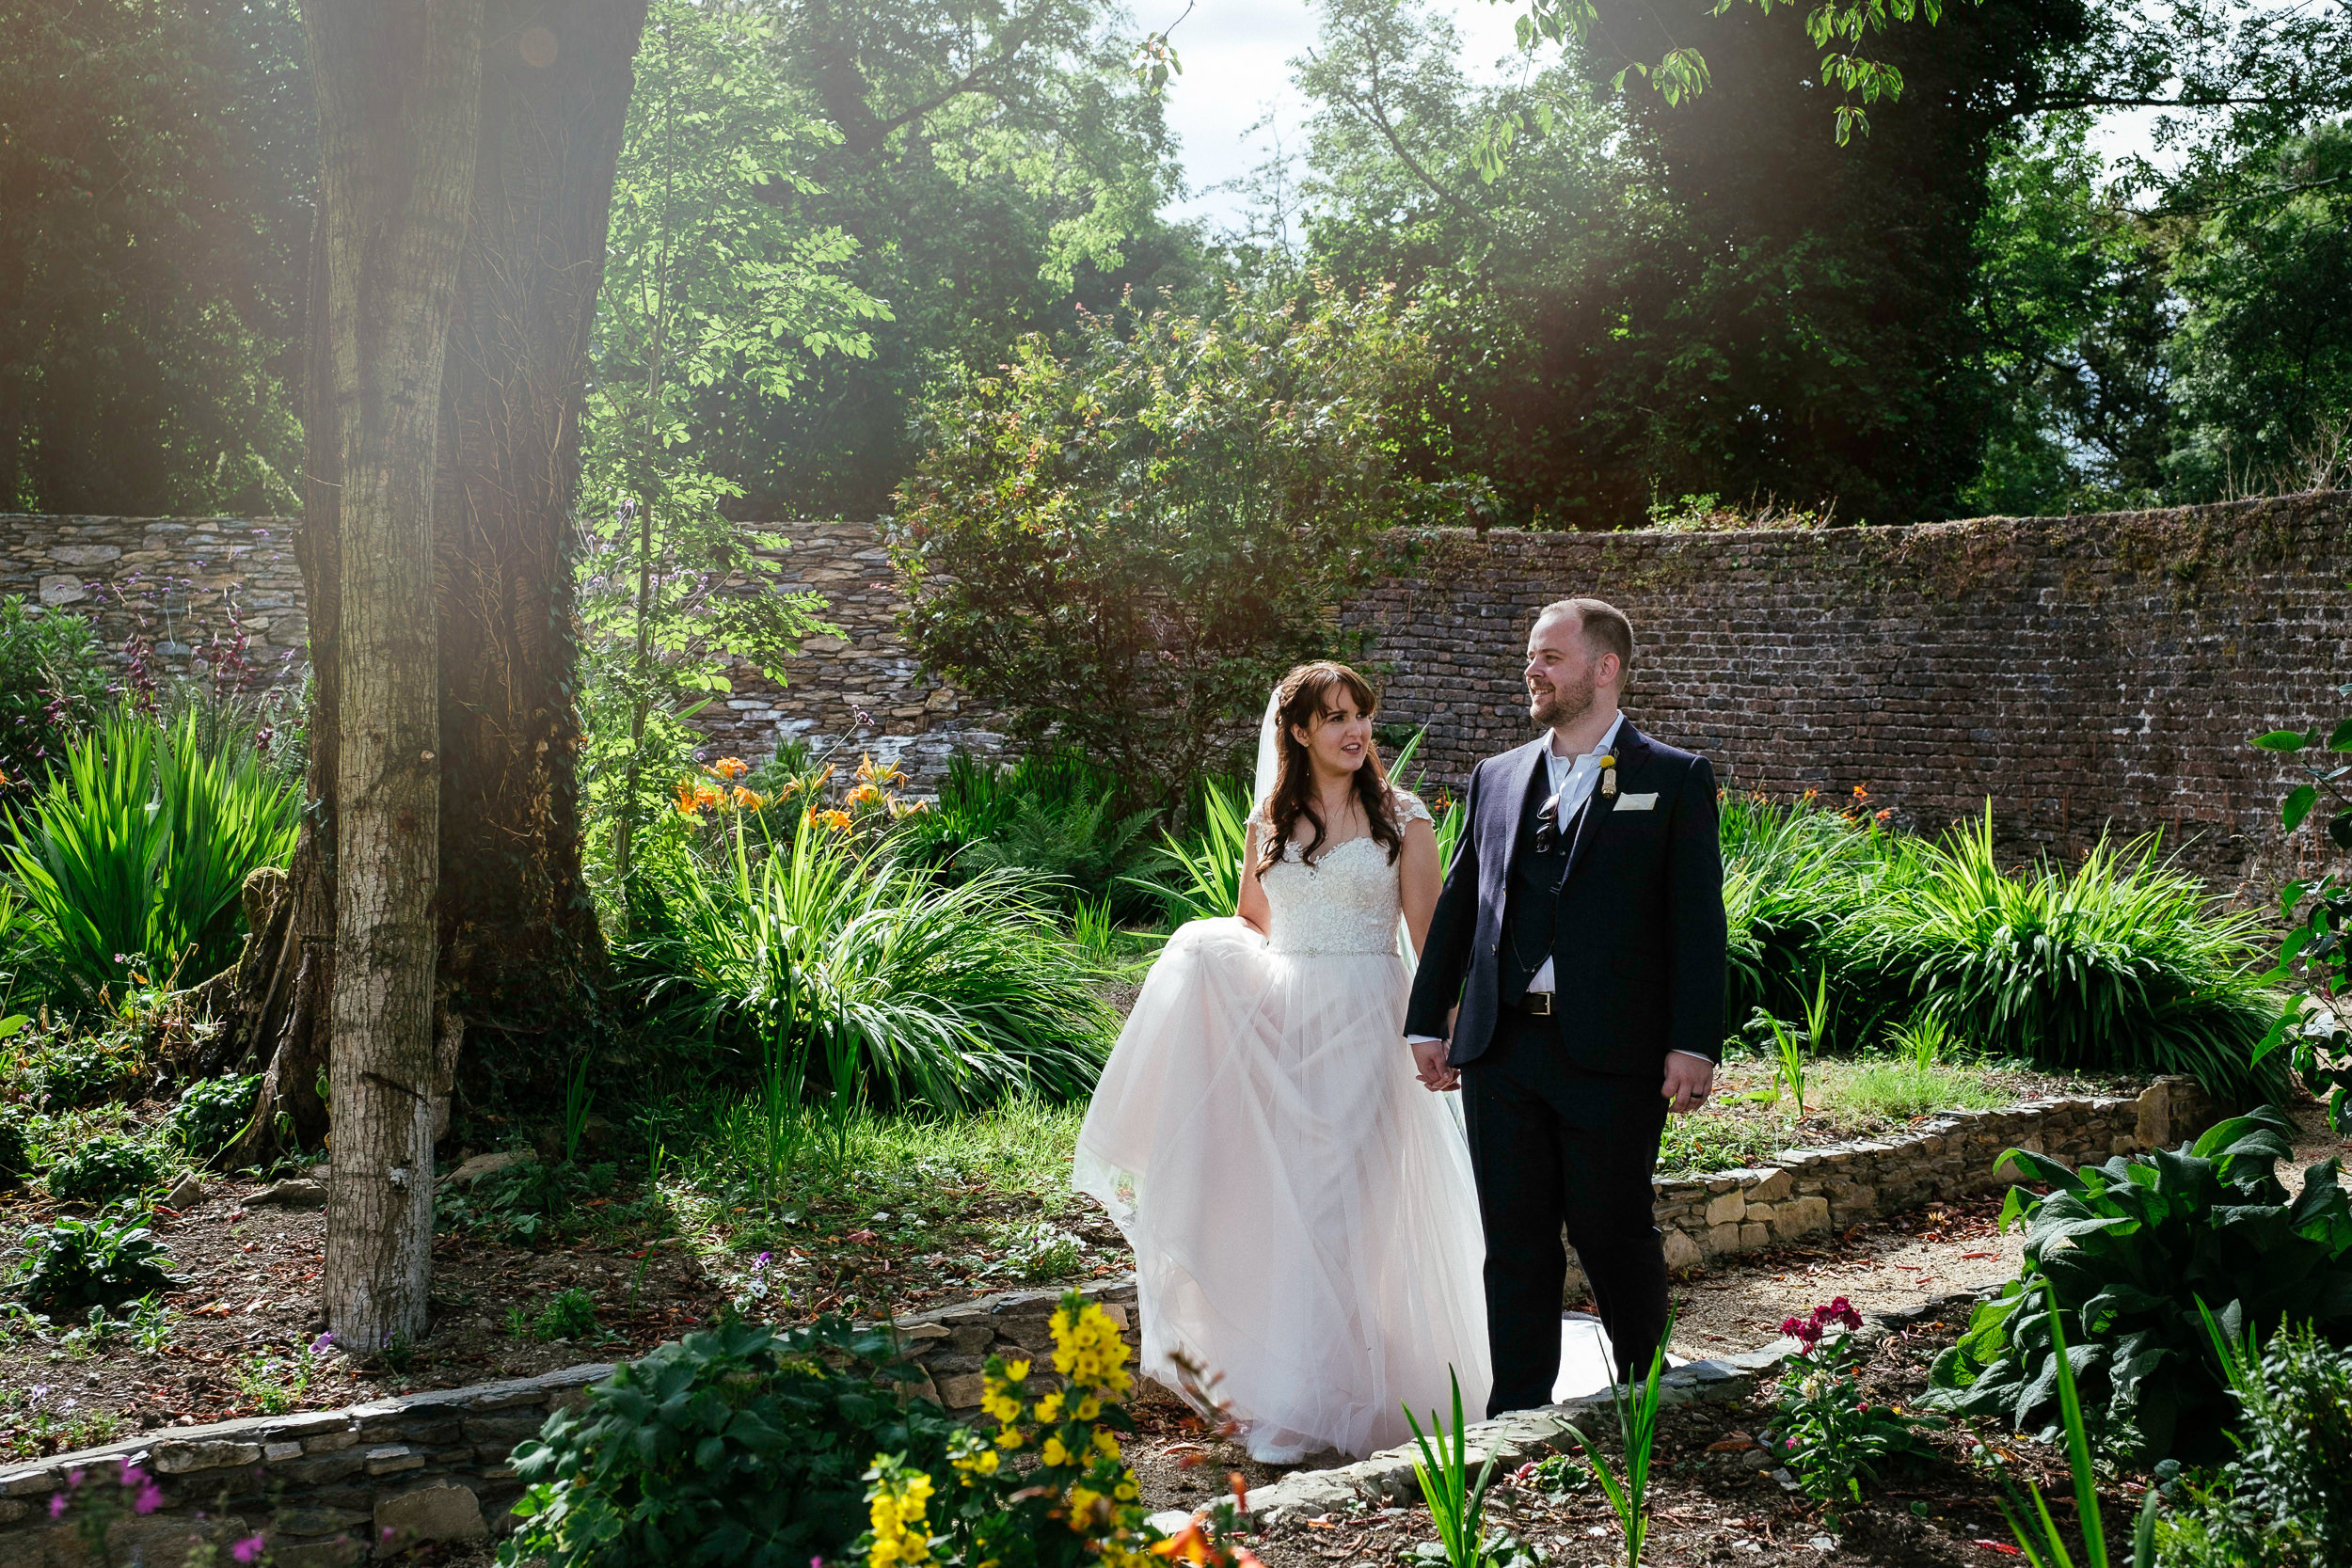 bride and groom walking in garden during their summer wedding at ballybeg house Co Wicklow